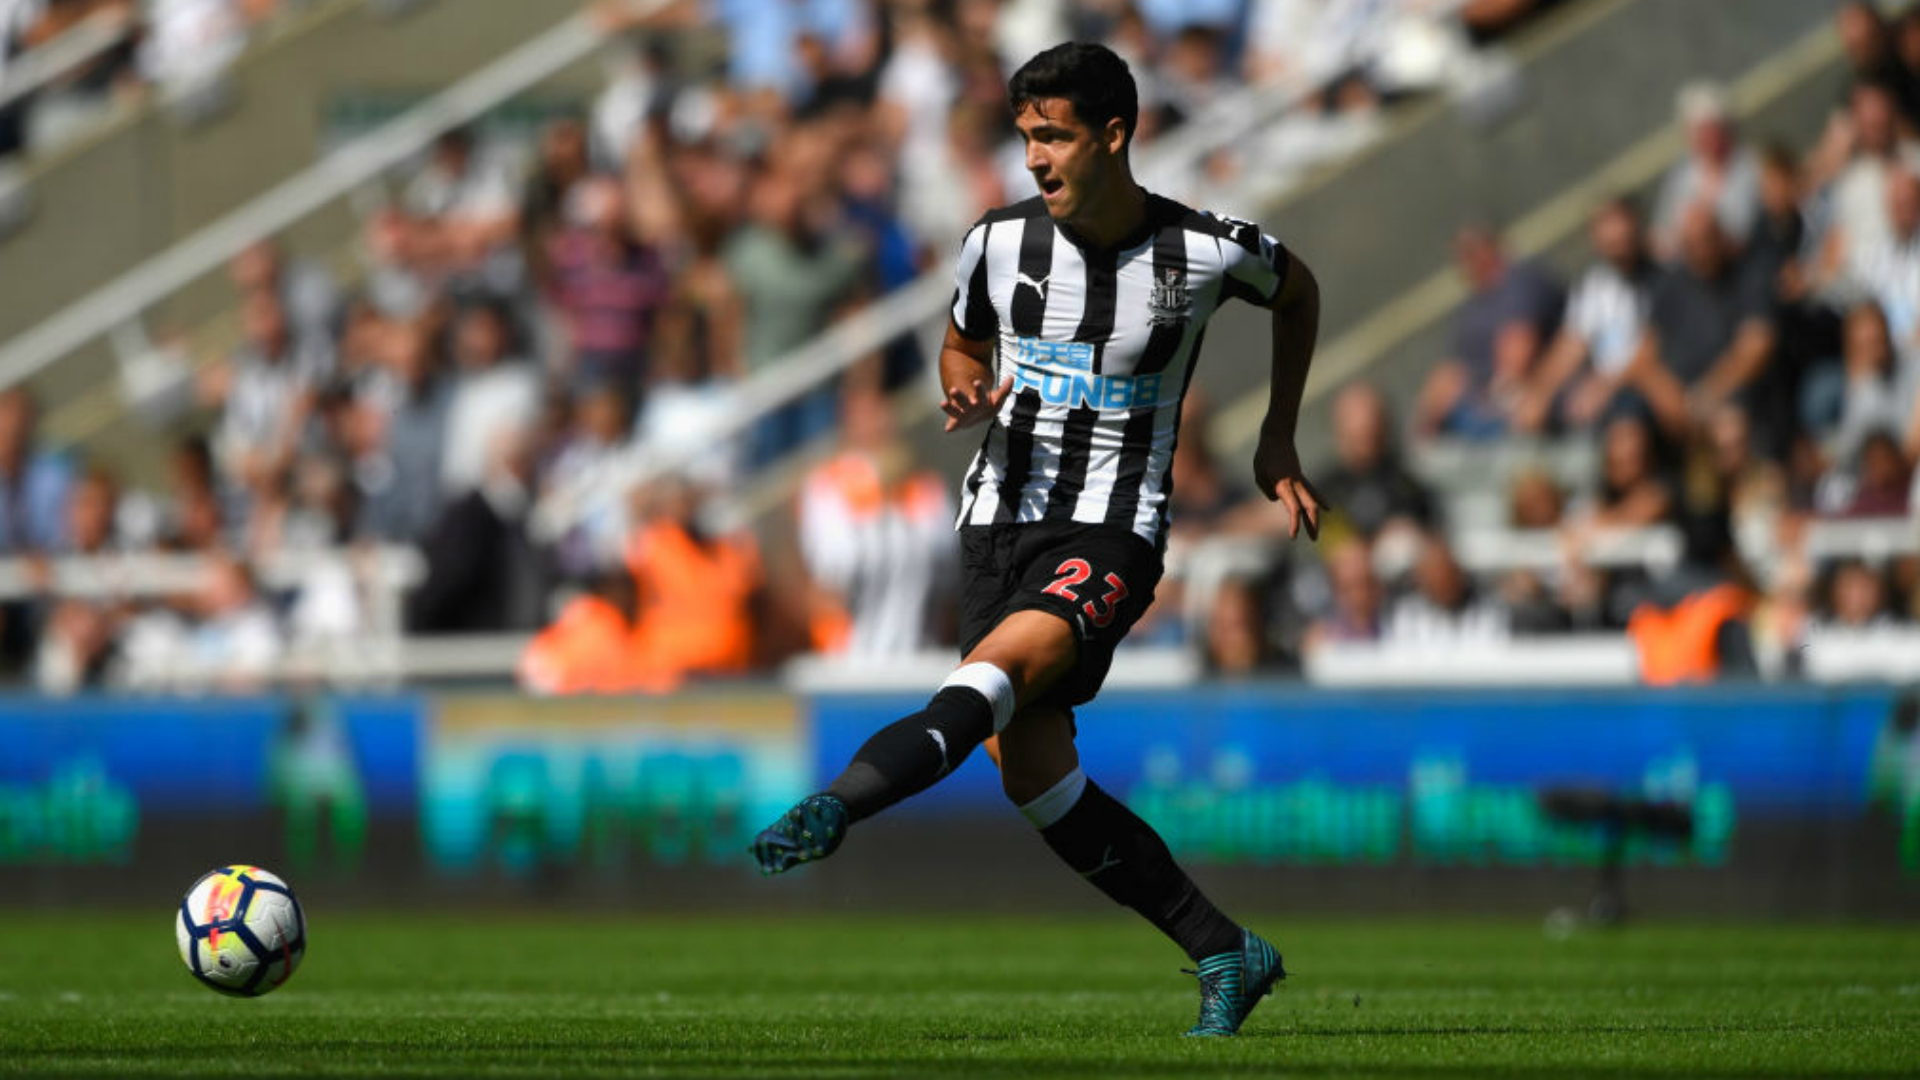 The Newcastle player Mikel Merino